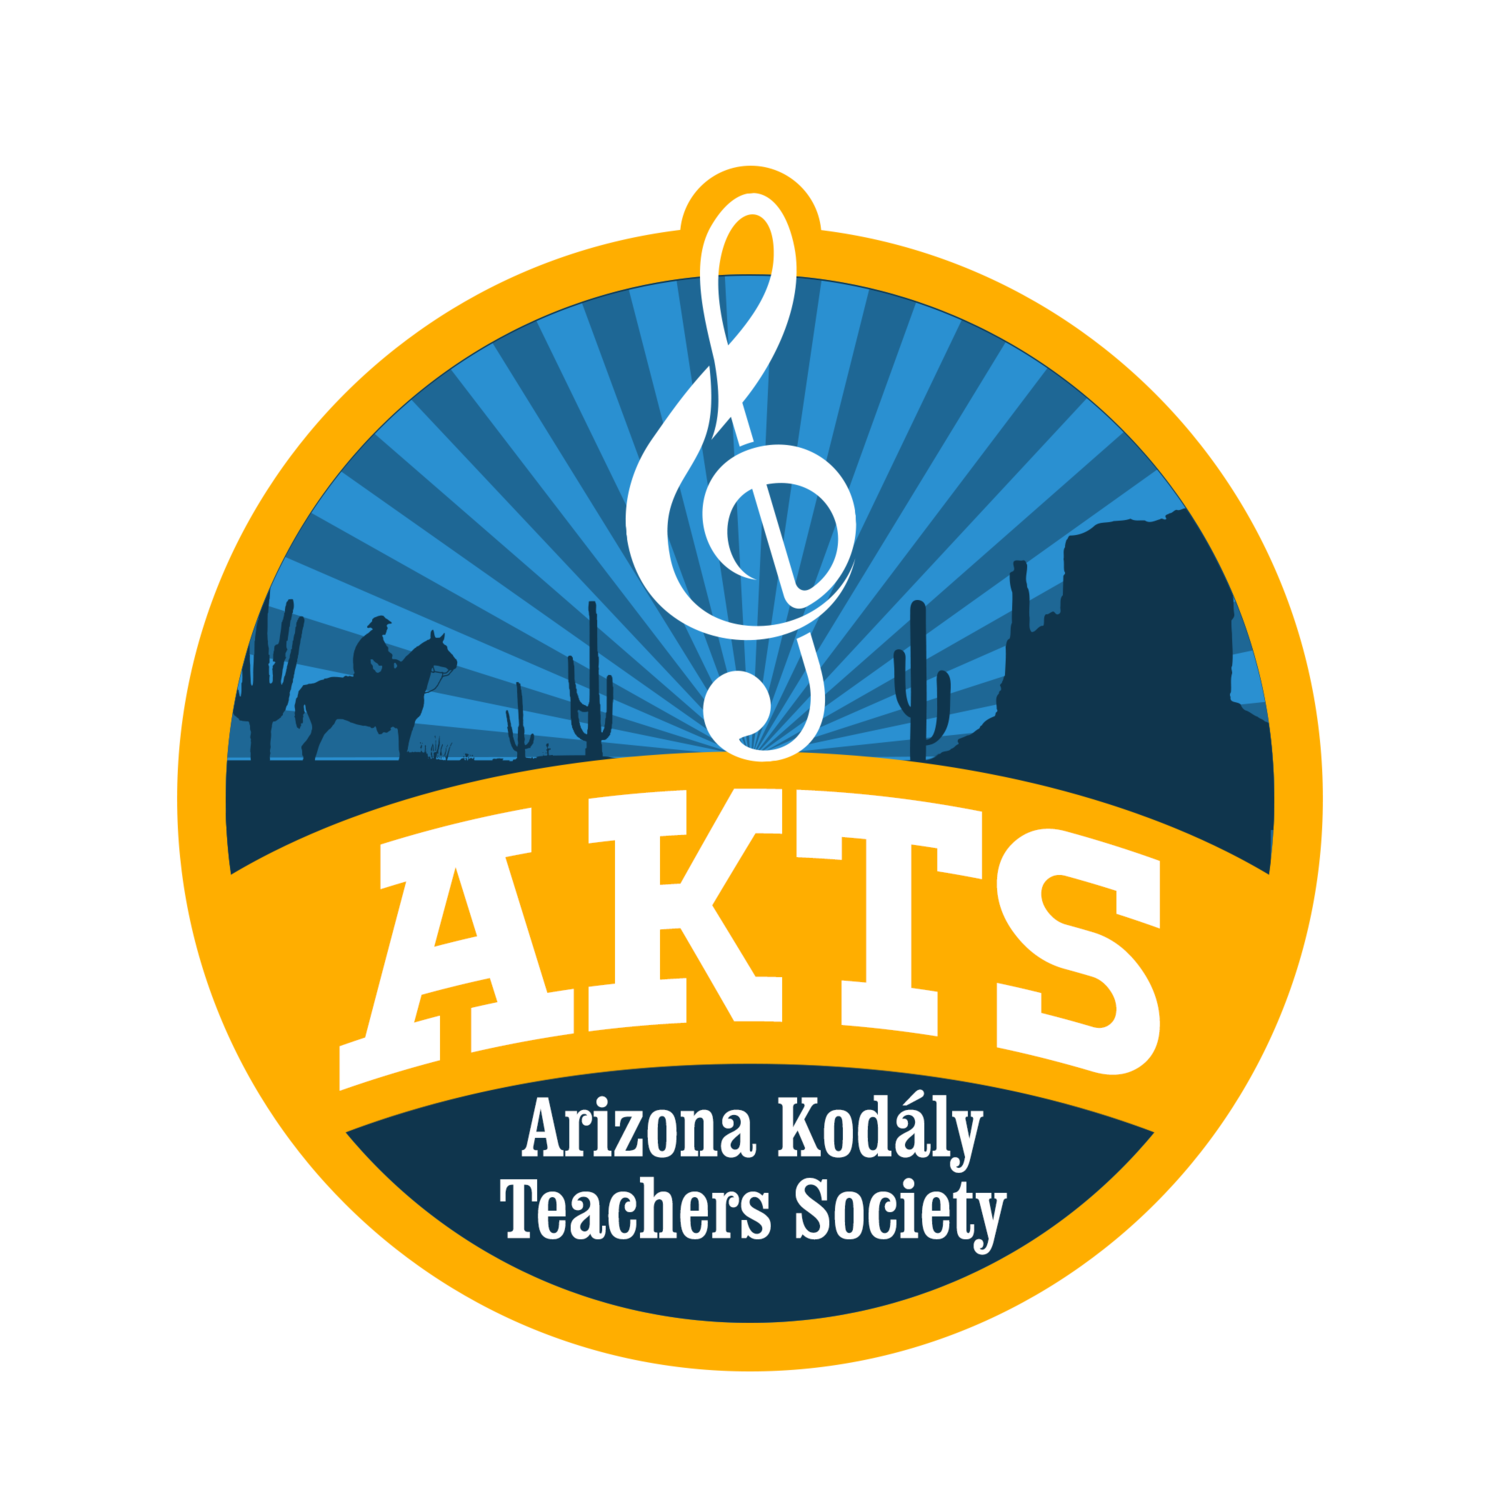 Arizona Kodály Teachers Society